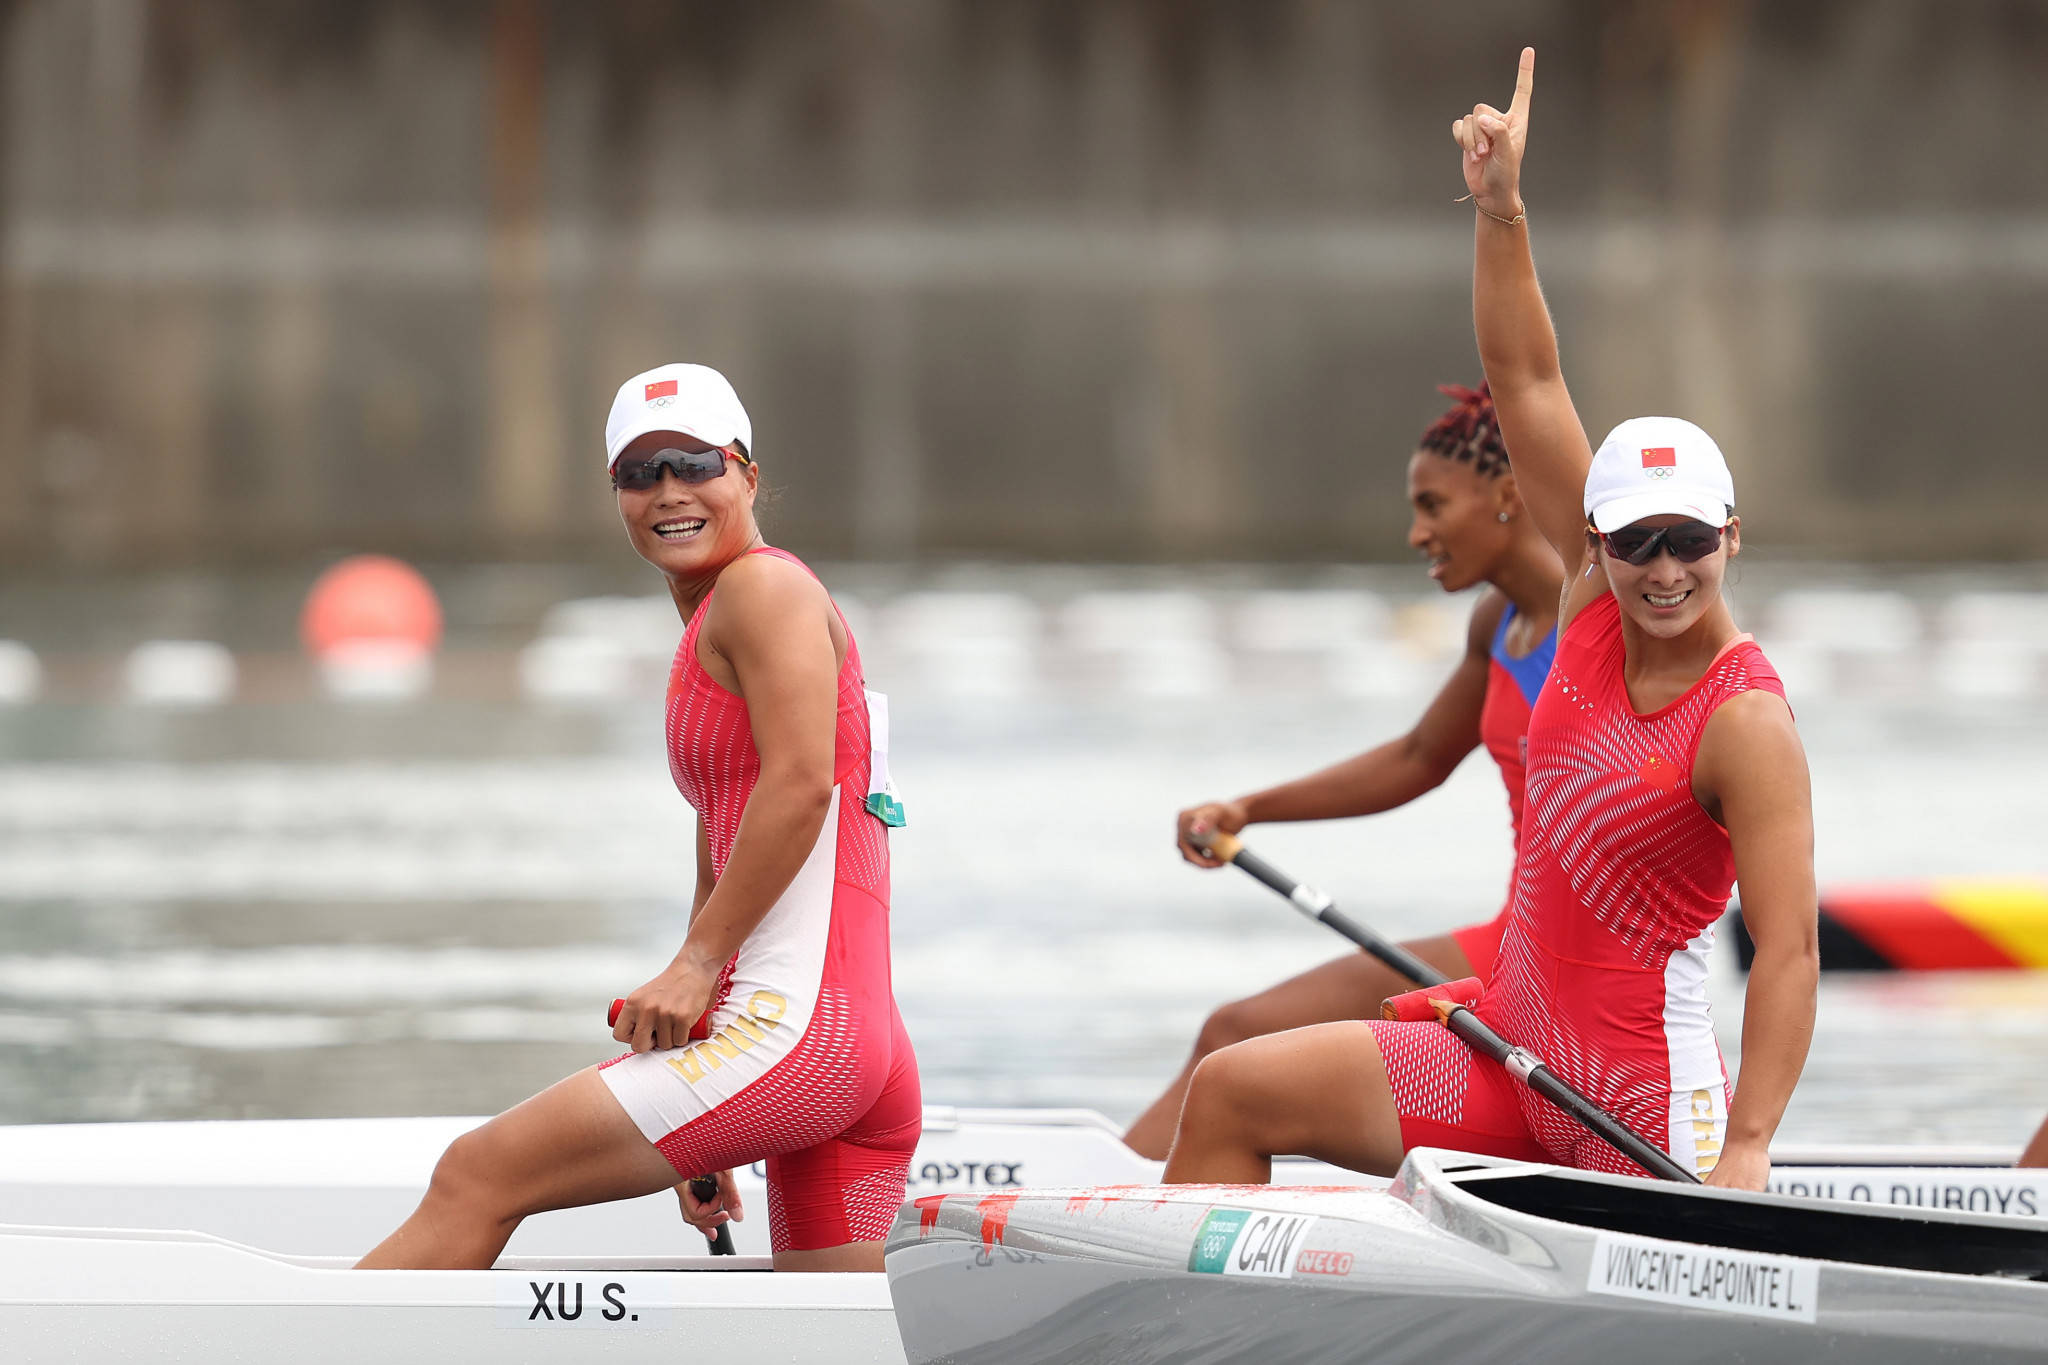 Xu Shixiao and Sun Mengya produced a dominant display to win the women's C2 500m final ©Getty Images